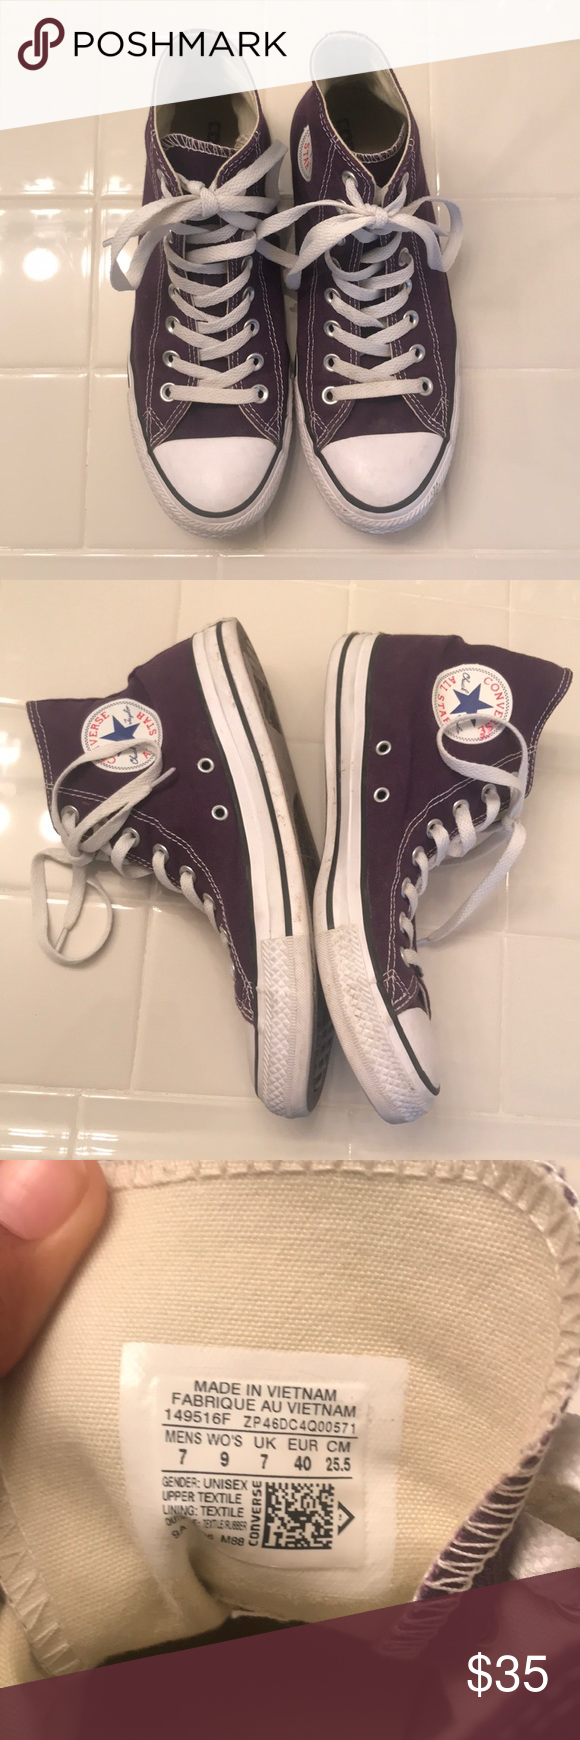 c4a3962de486 Purple High Top Converse 7M 9W Bought and worn once for a Halloween  costume. Great shape! Practically new! Converse Shoes Sneakers